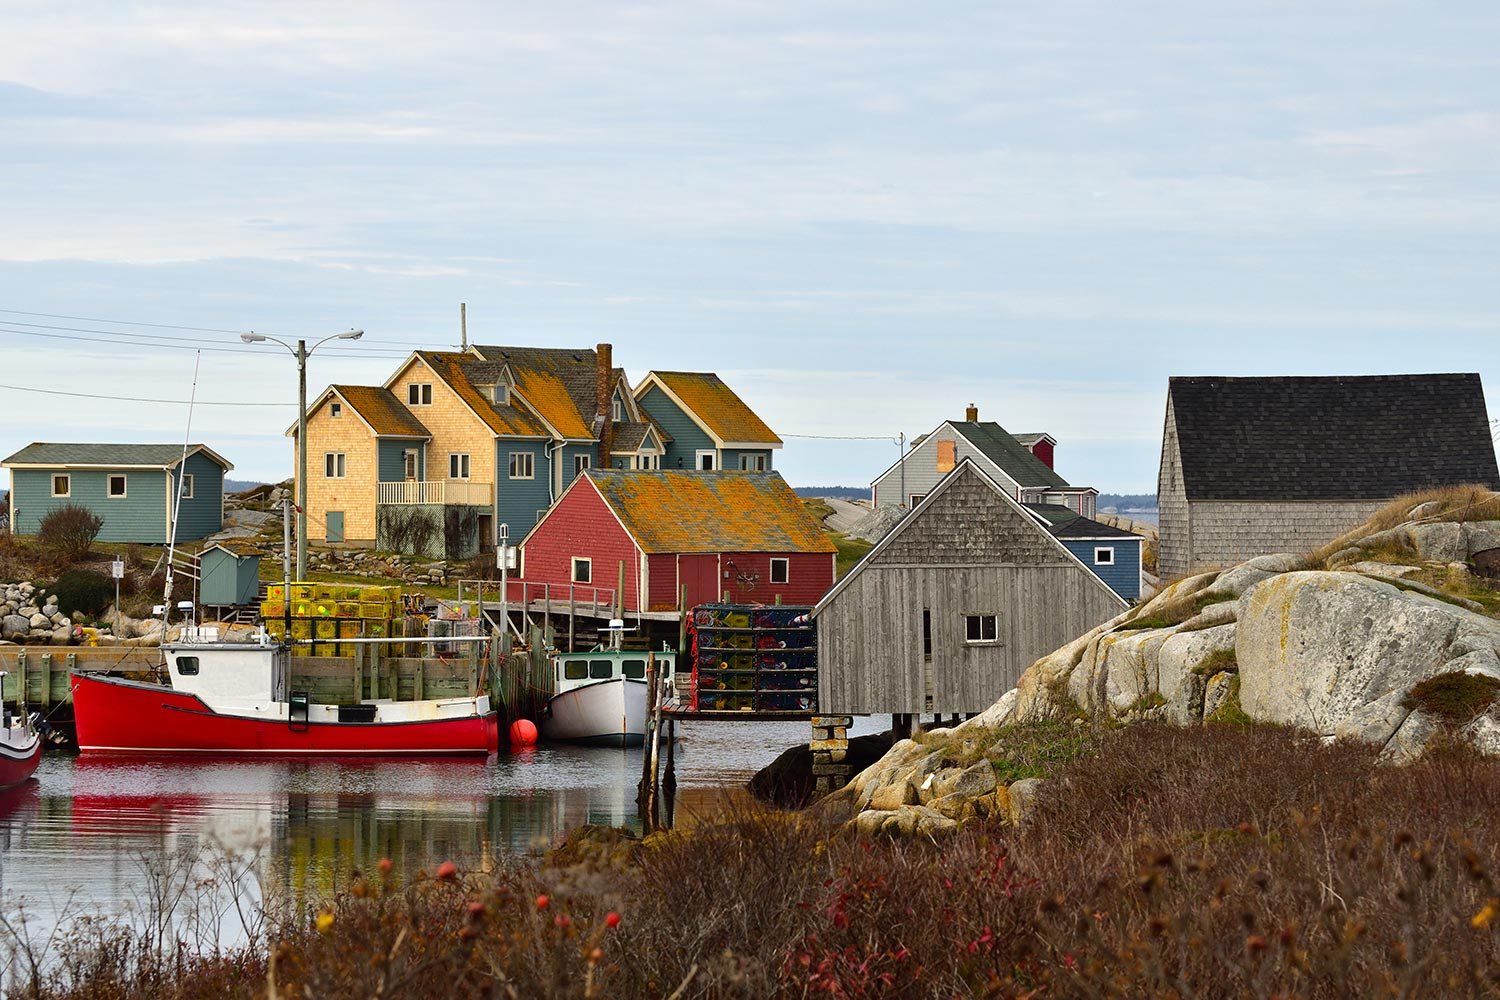 Colorful homes next to a red and white boat anchored in a body of glassy water in Halifax